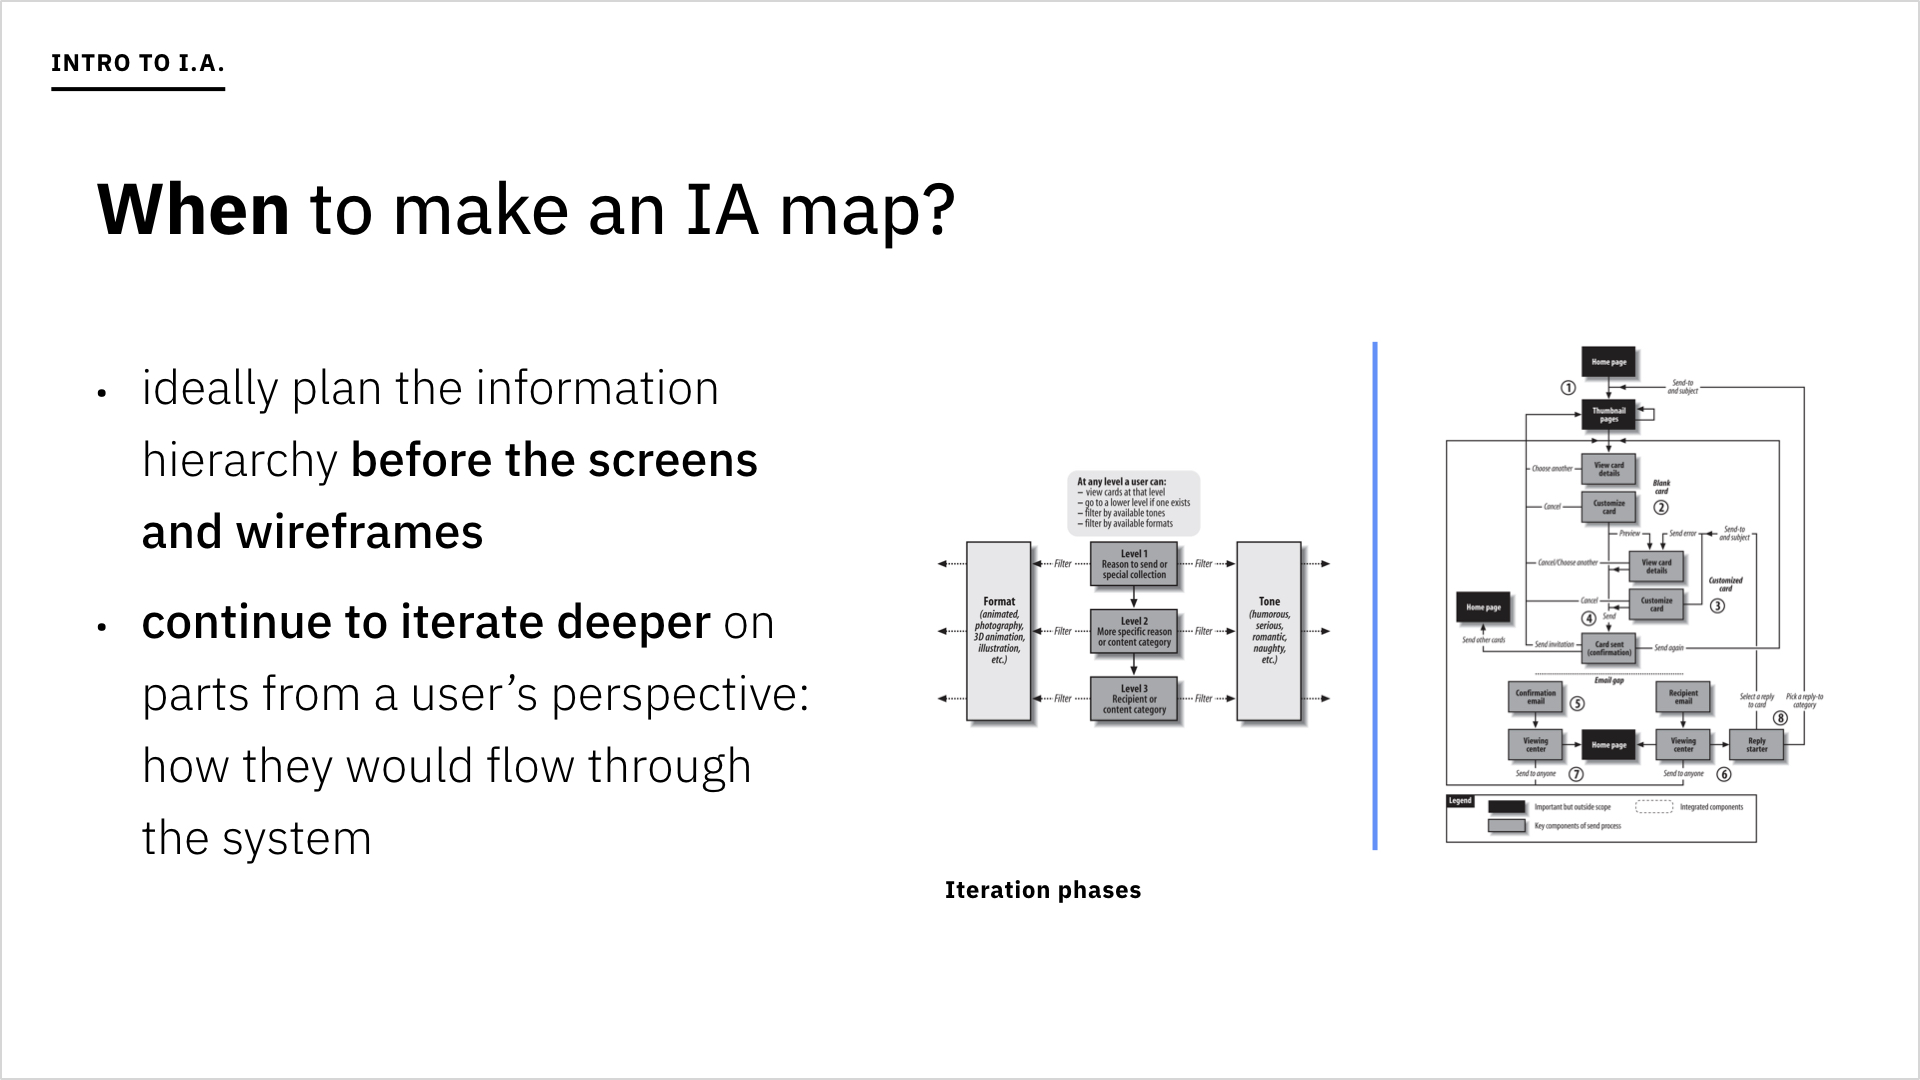 A slide asking when to make an IA map.